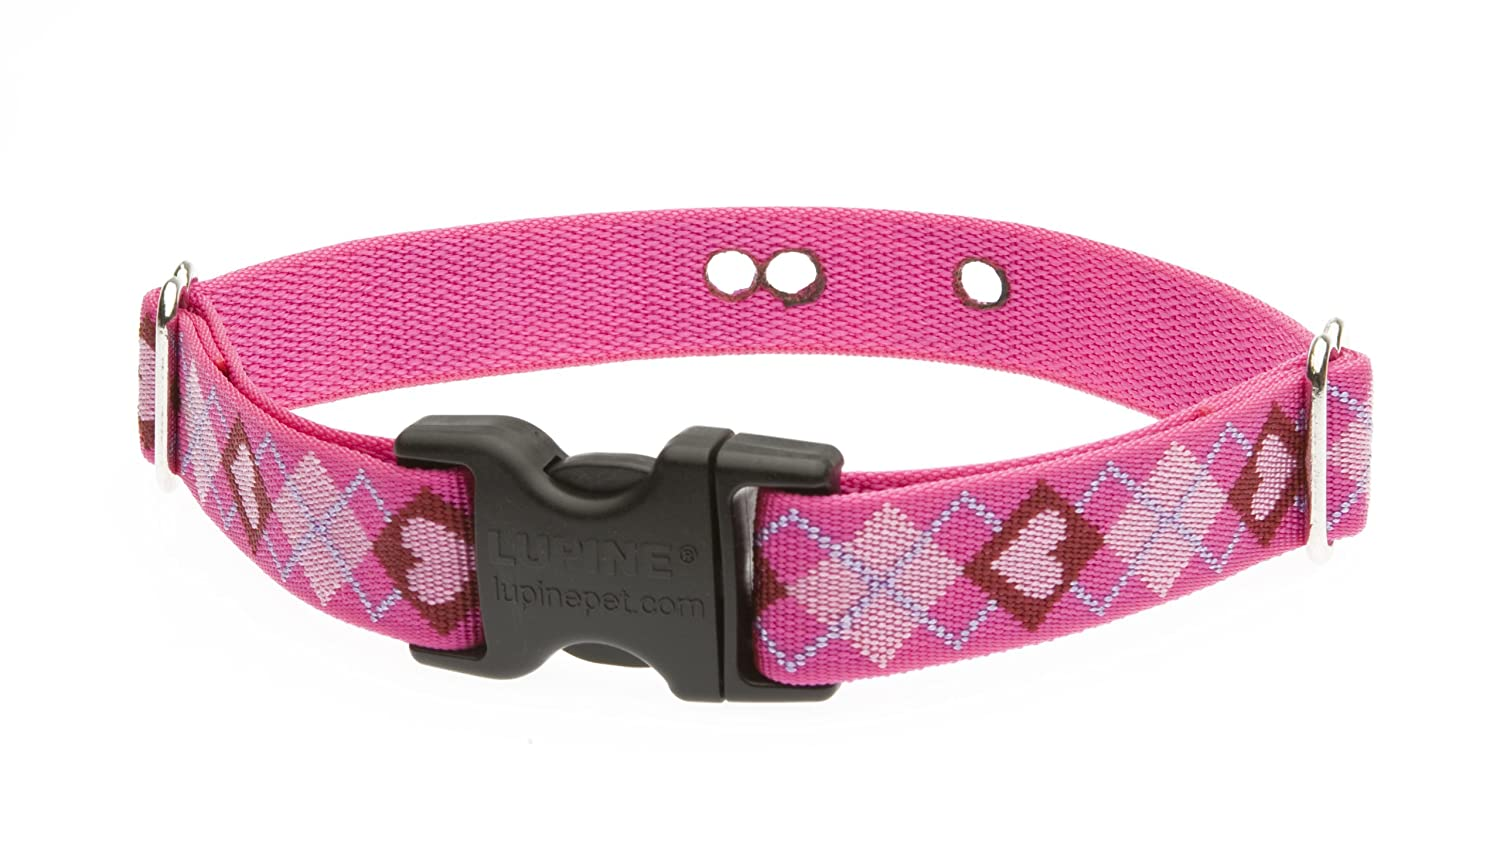 LupinePet 1 Inch Puppy Love Containment Collar Strap for Medium and Large Dogs